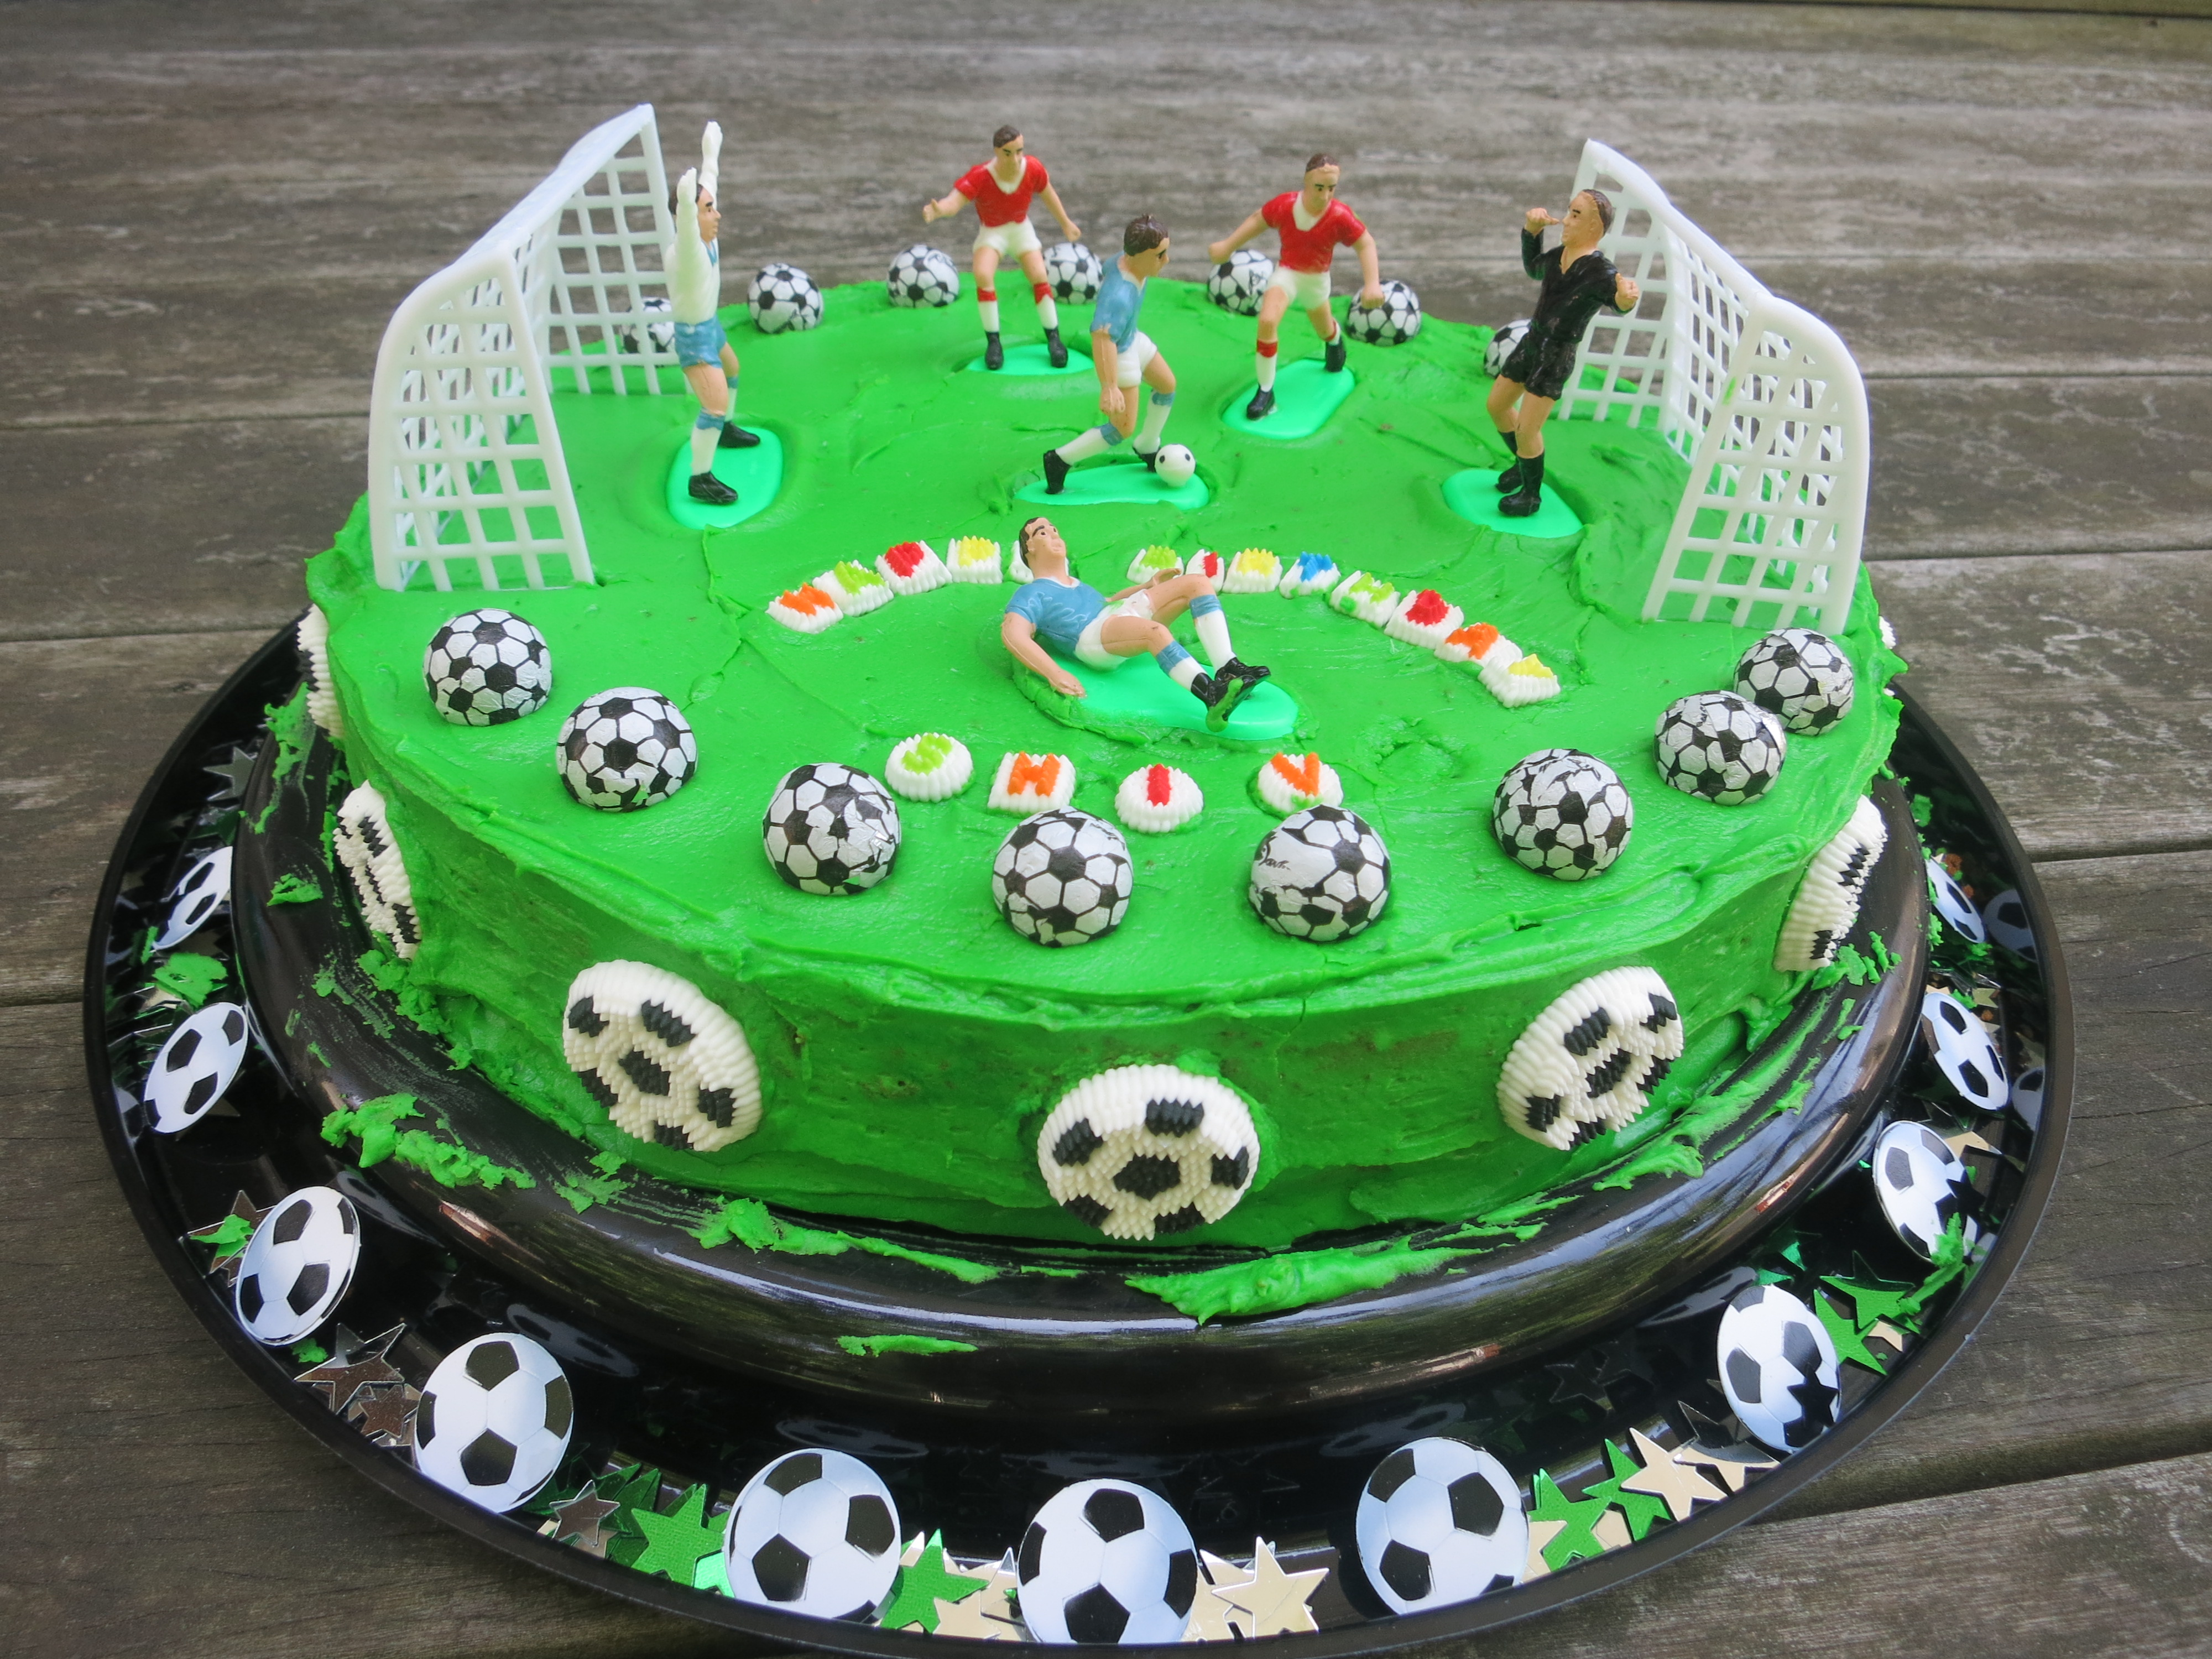 Swell 6 Football Players With Birthday Cakes Photo Soccer Birthday Personalised Birthday Cards Paralily Jamesorg